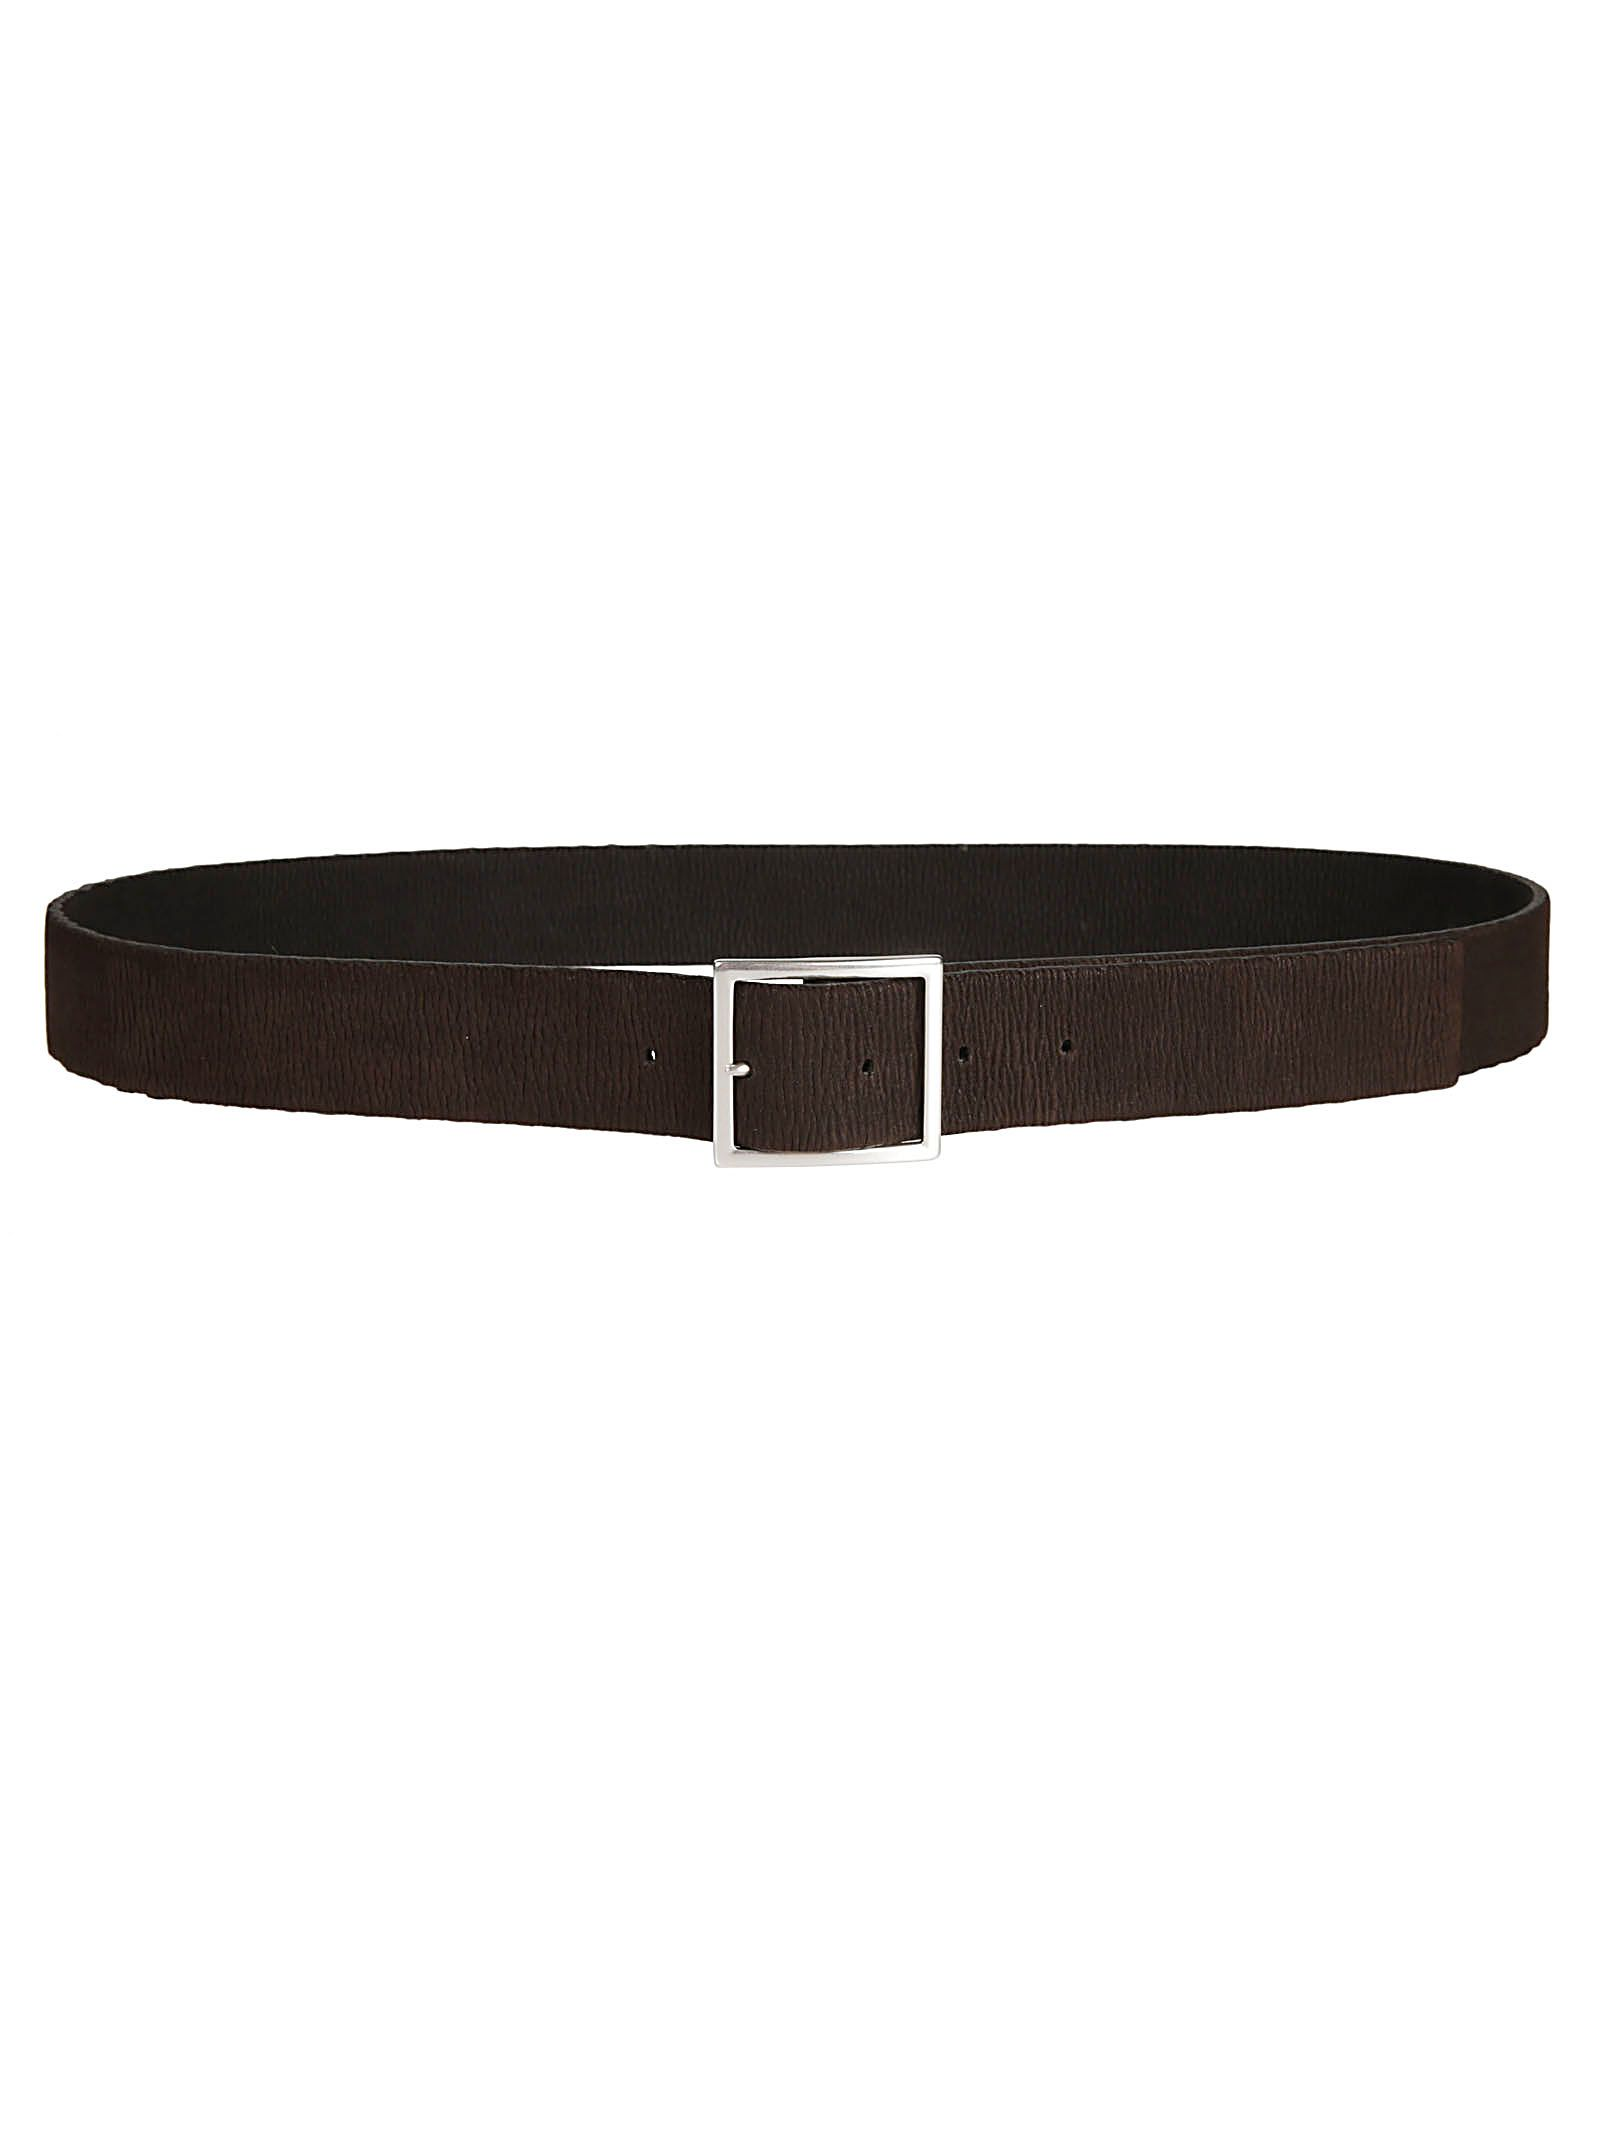 Orciani Squared Buckle Belt